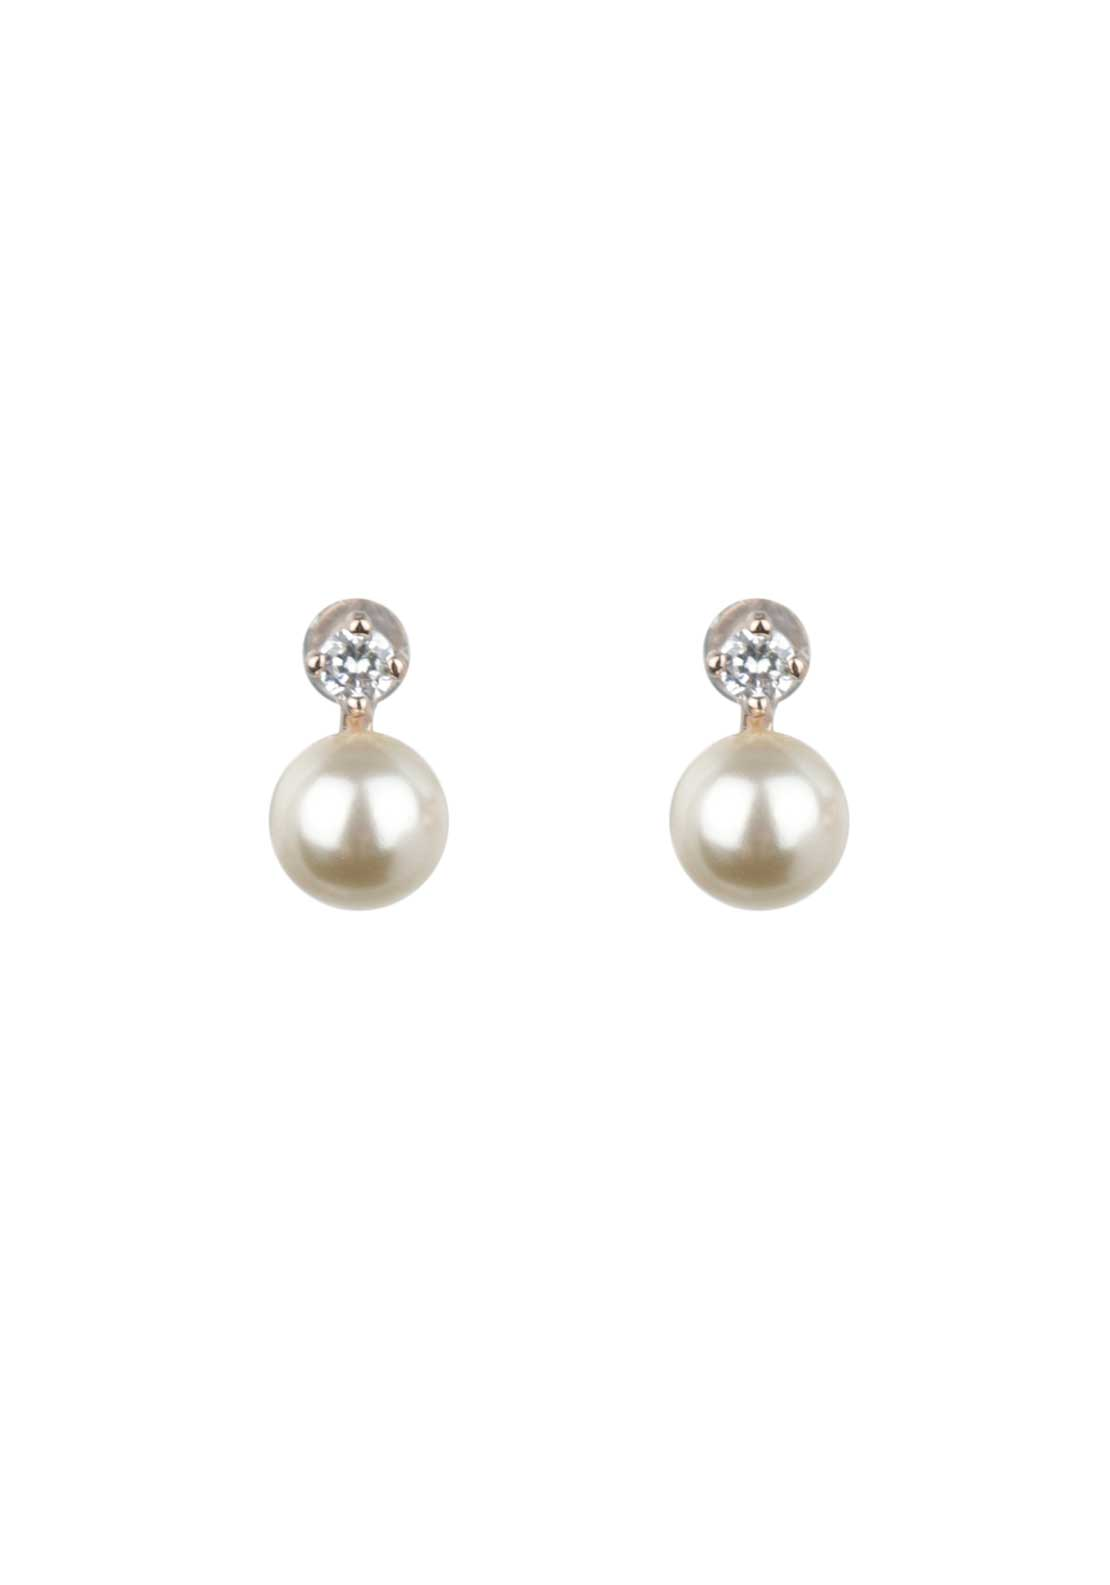 Absolute Jewellery Girls Small Pearl and Pave Stud Earrings, Rose Gold